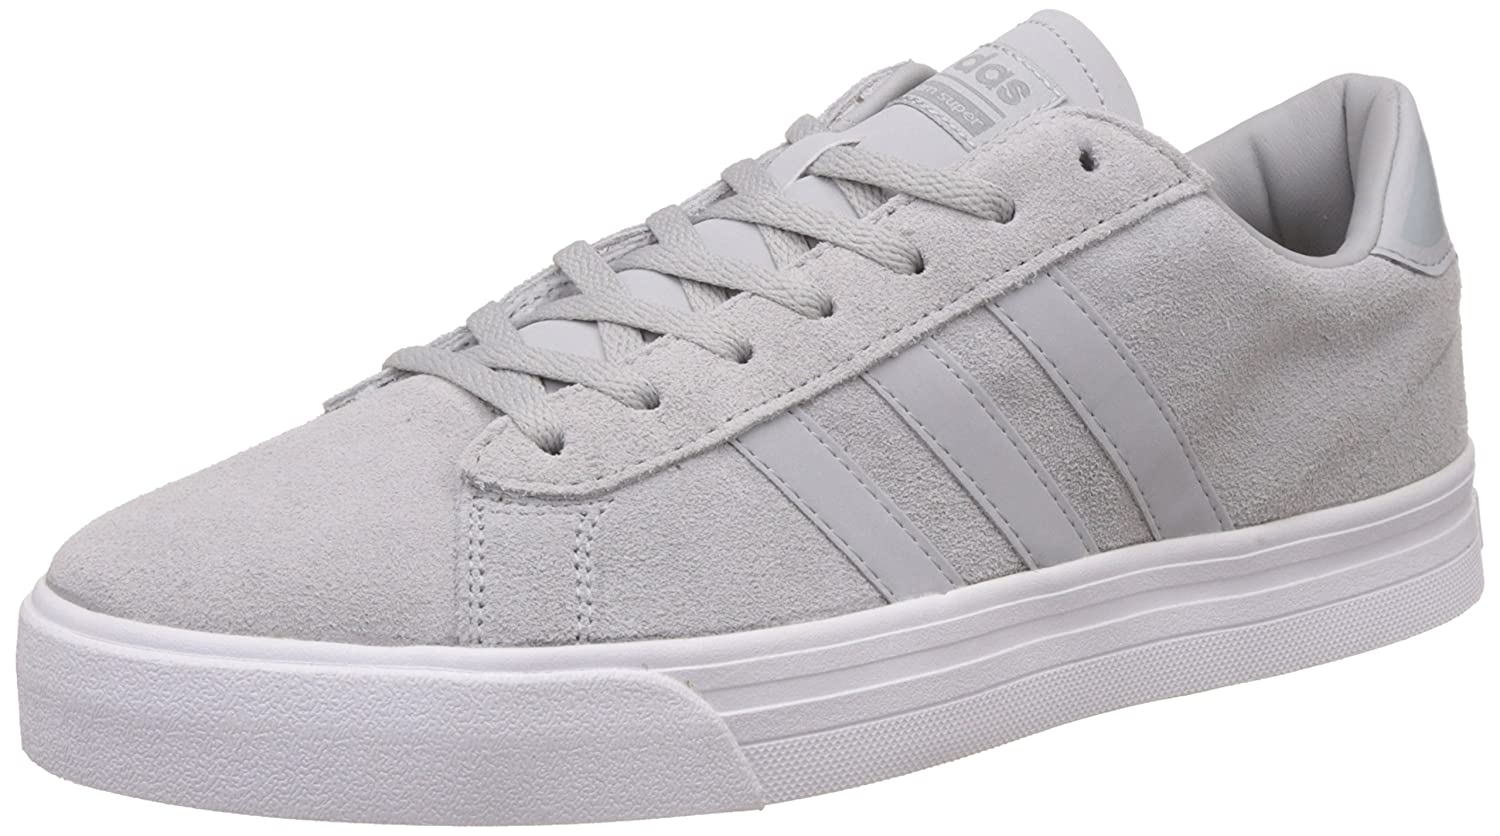 adidas neo Men s Cloudfoam Super Daily Clonix and Grey Leather Sneakers - 8  UK India (42 EU)  Buy Online at Low Prices in India - Amazon.in a77a345f4